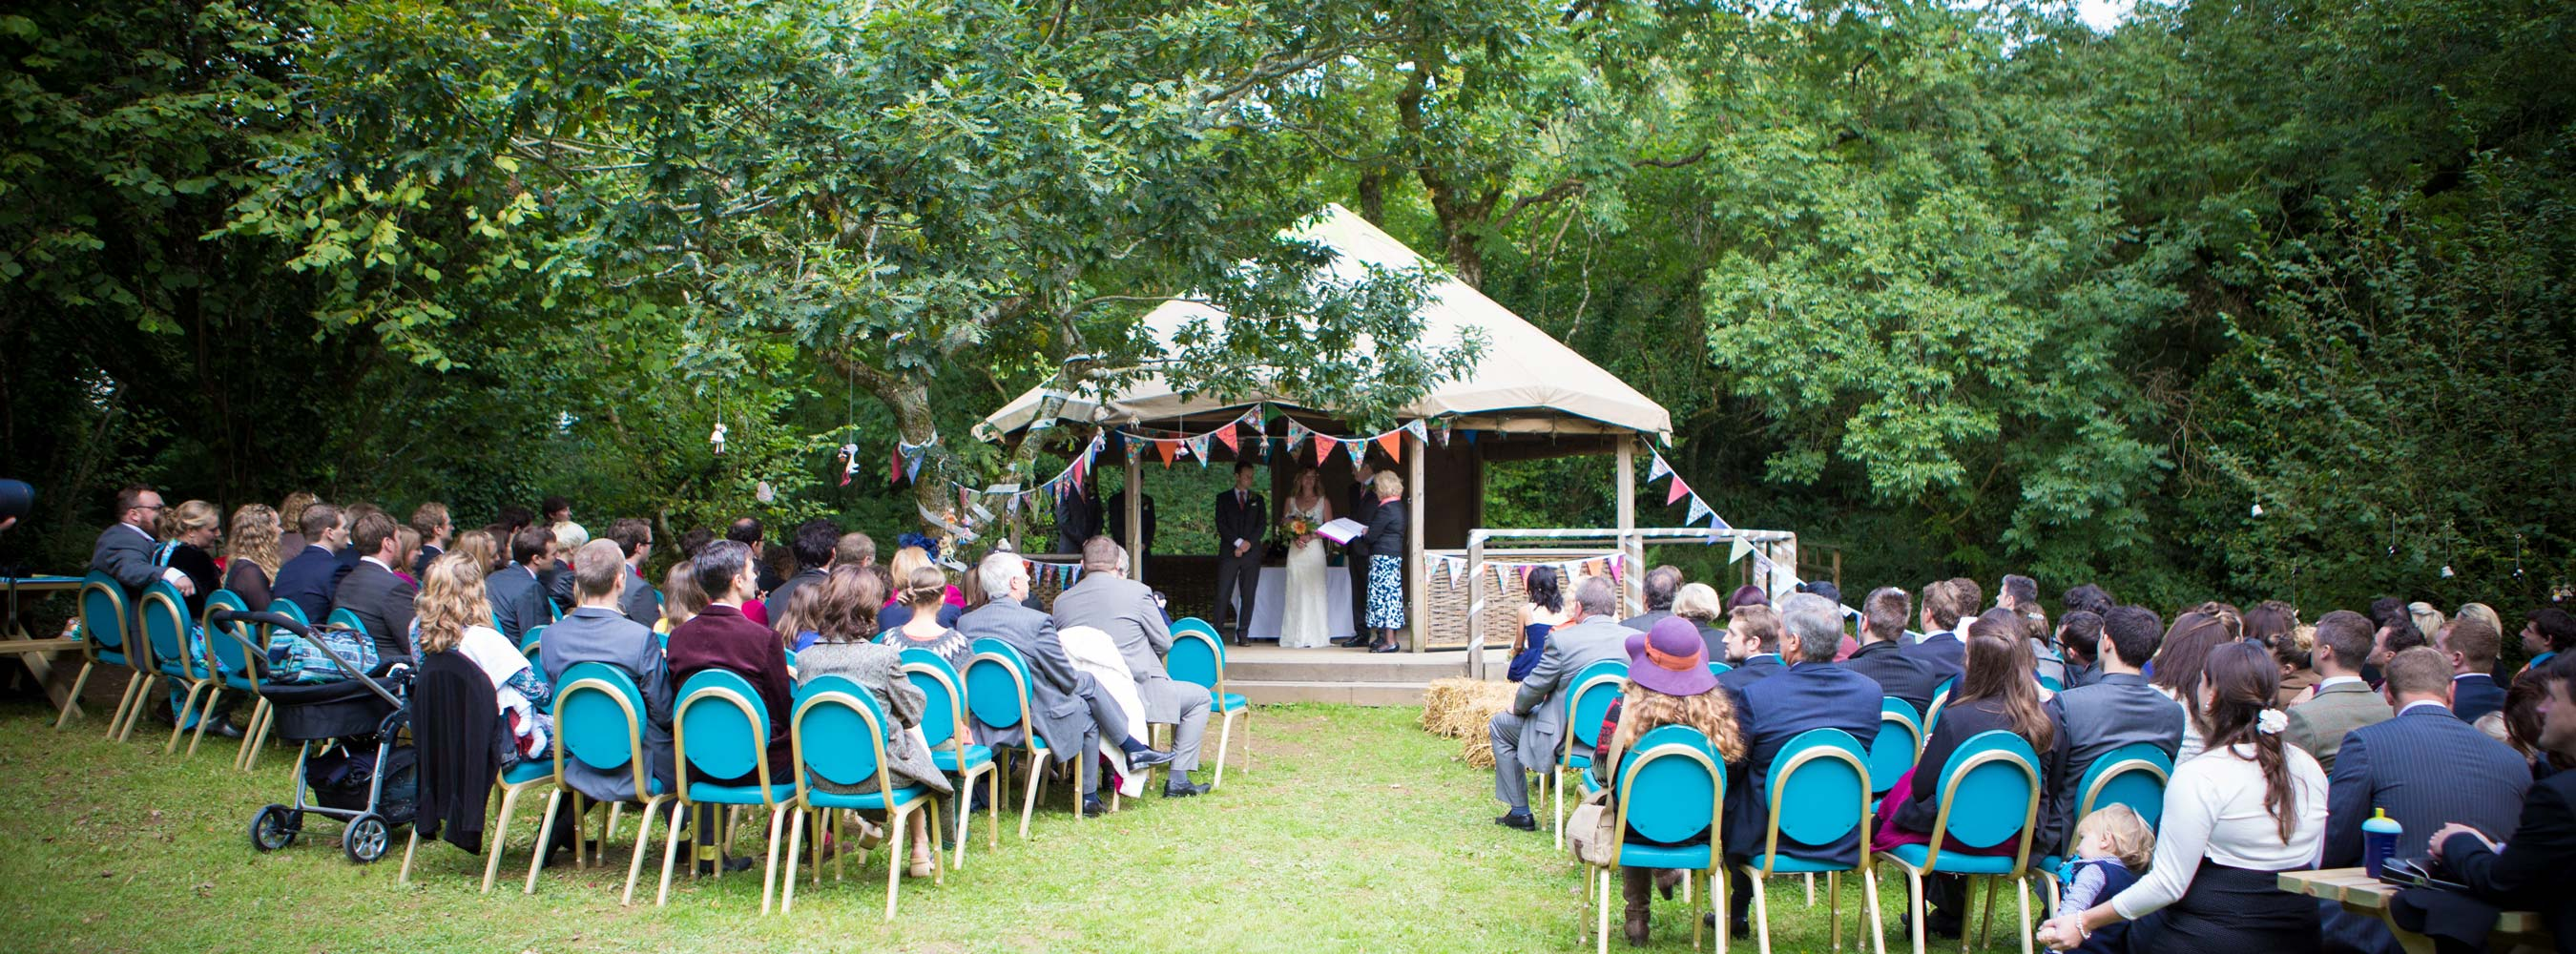 Wedding Pavilion Outside Legal Ceremony